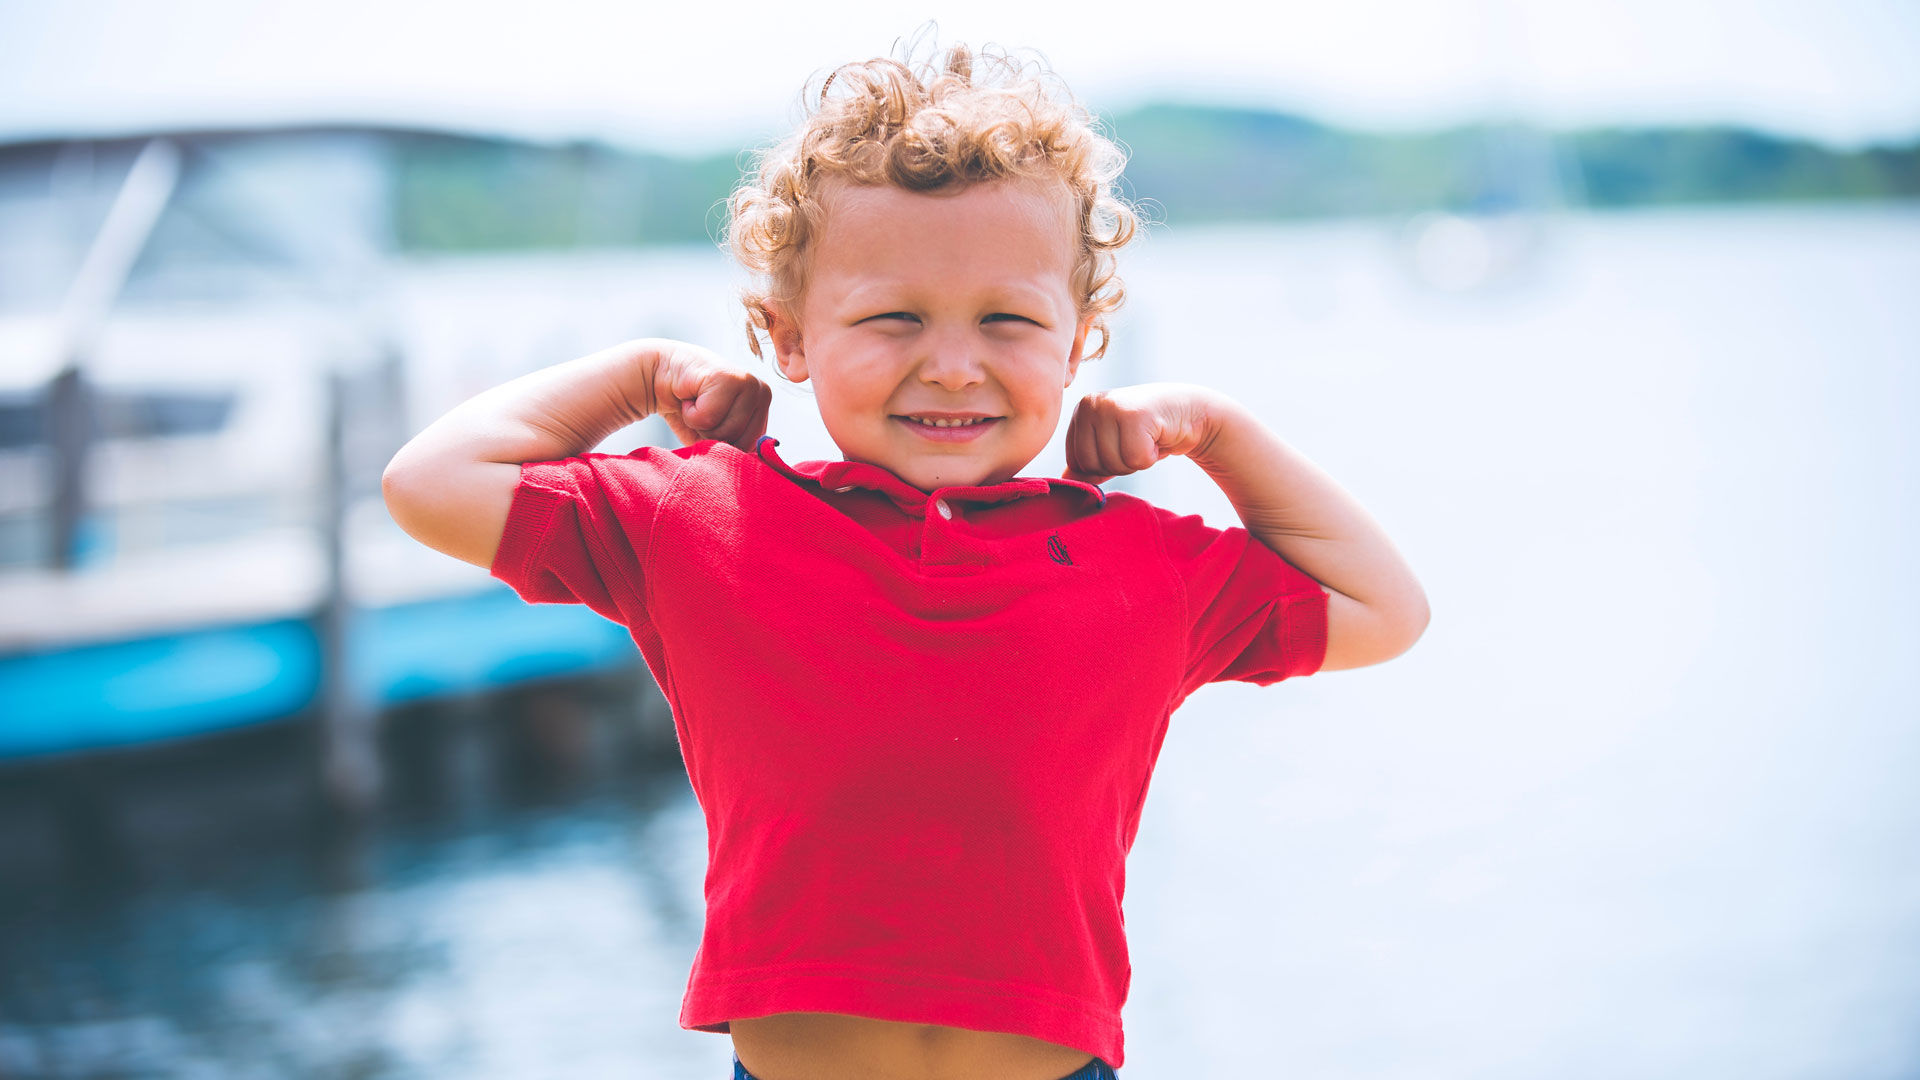 Boy in a red shirt flexing his arms